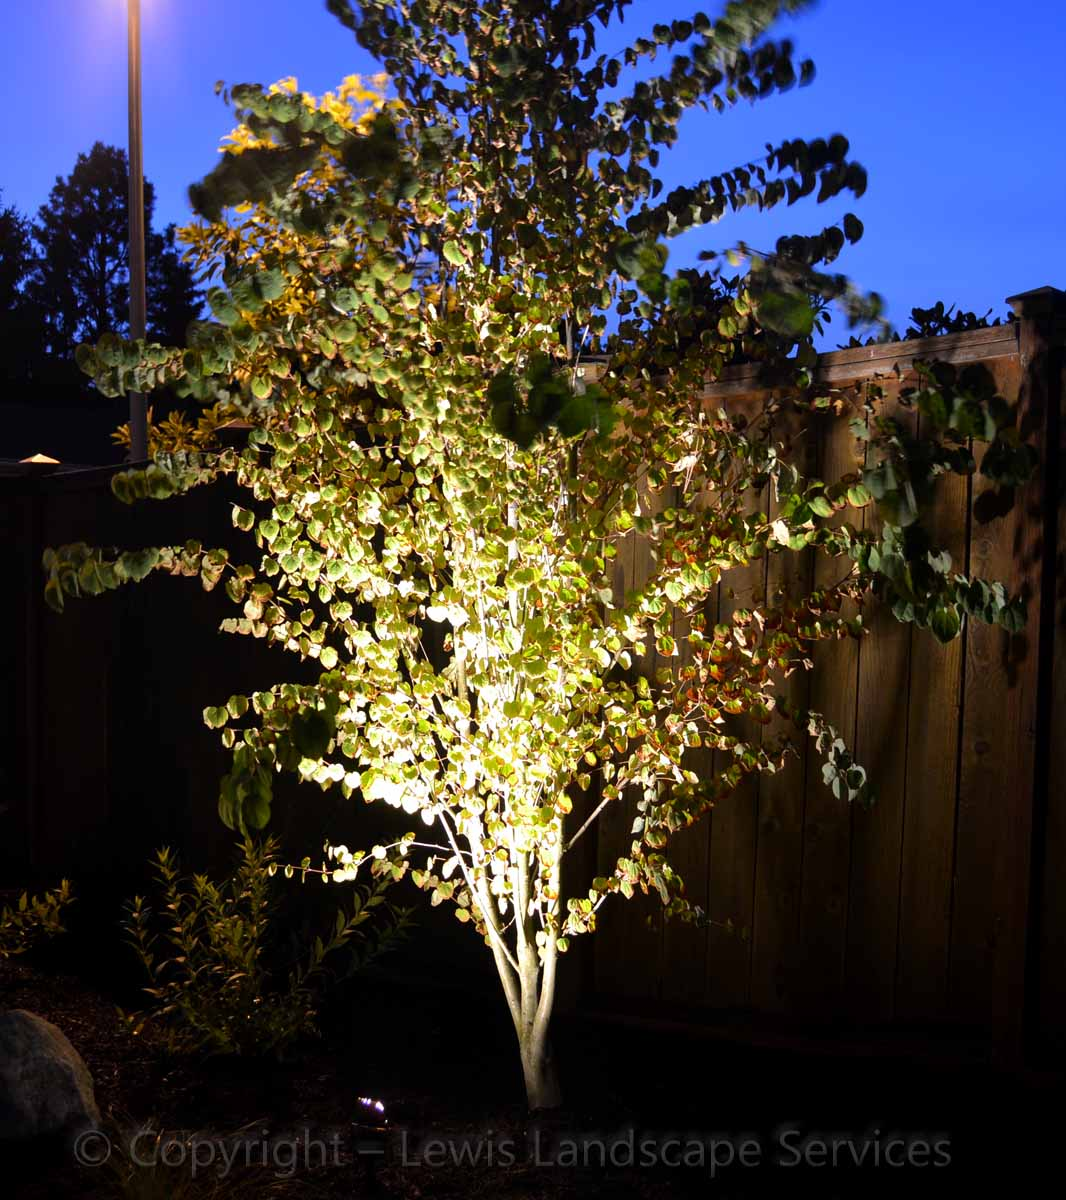 Outdoor-landscape-architectural-lighting-johnson-project-summer-2012 007